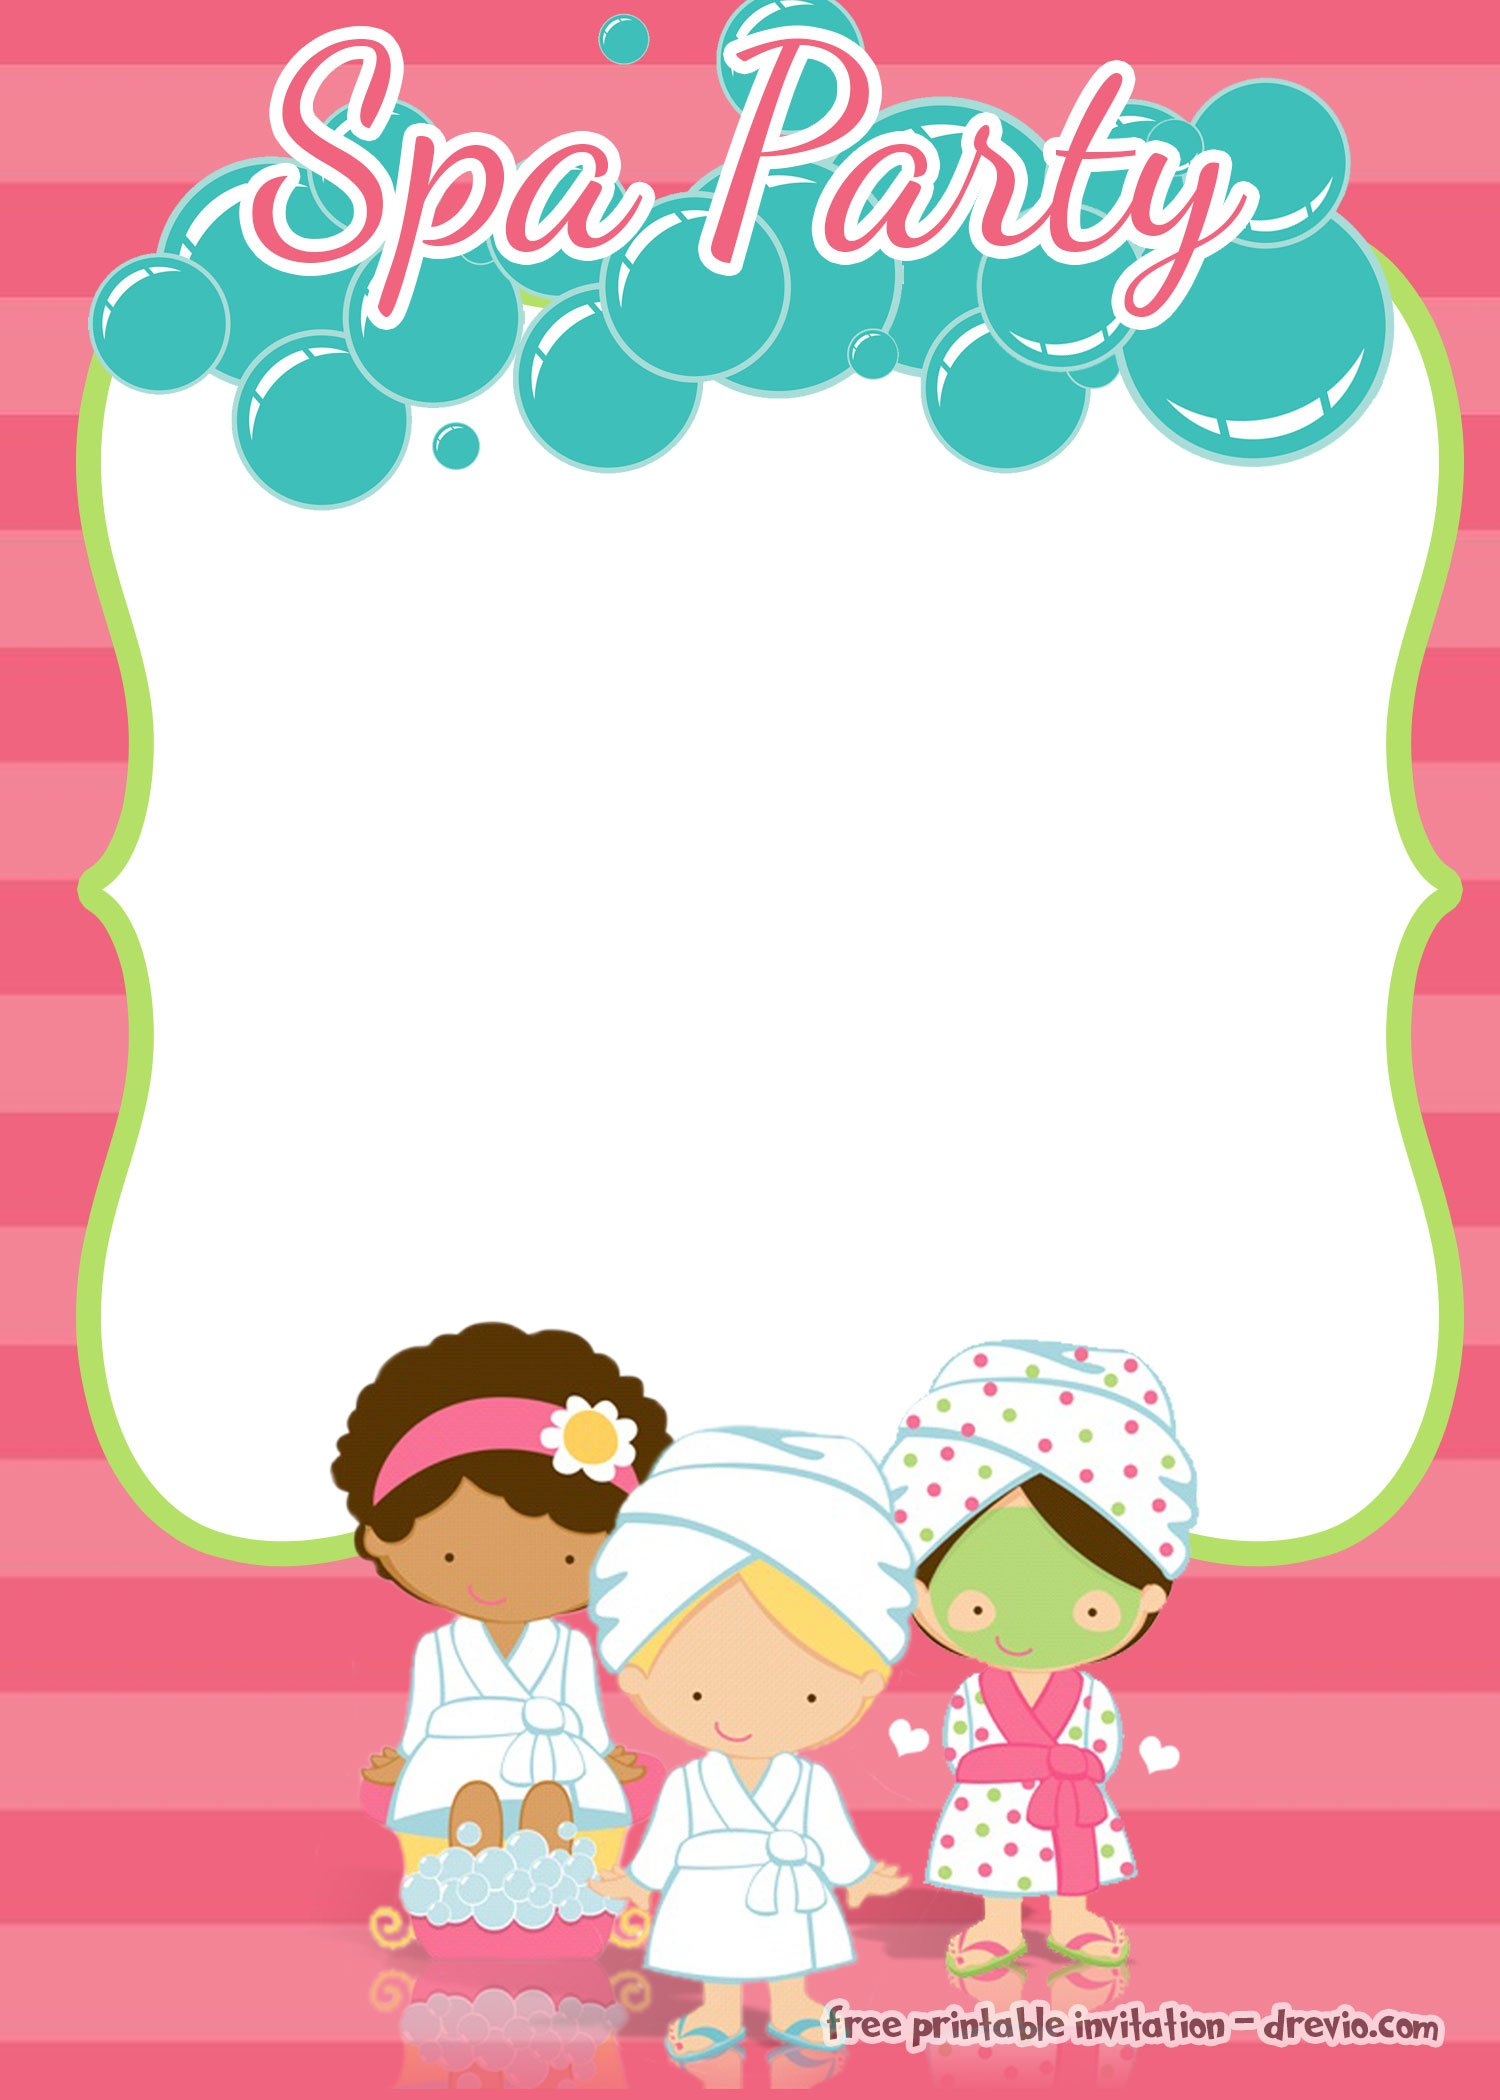 Spa Party Birthday Invitation Template – FREE Printable ...